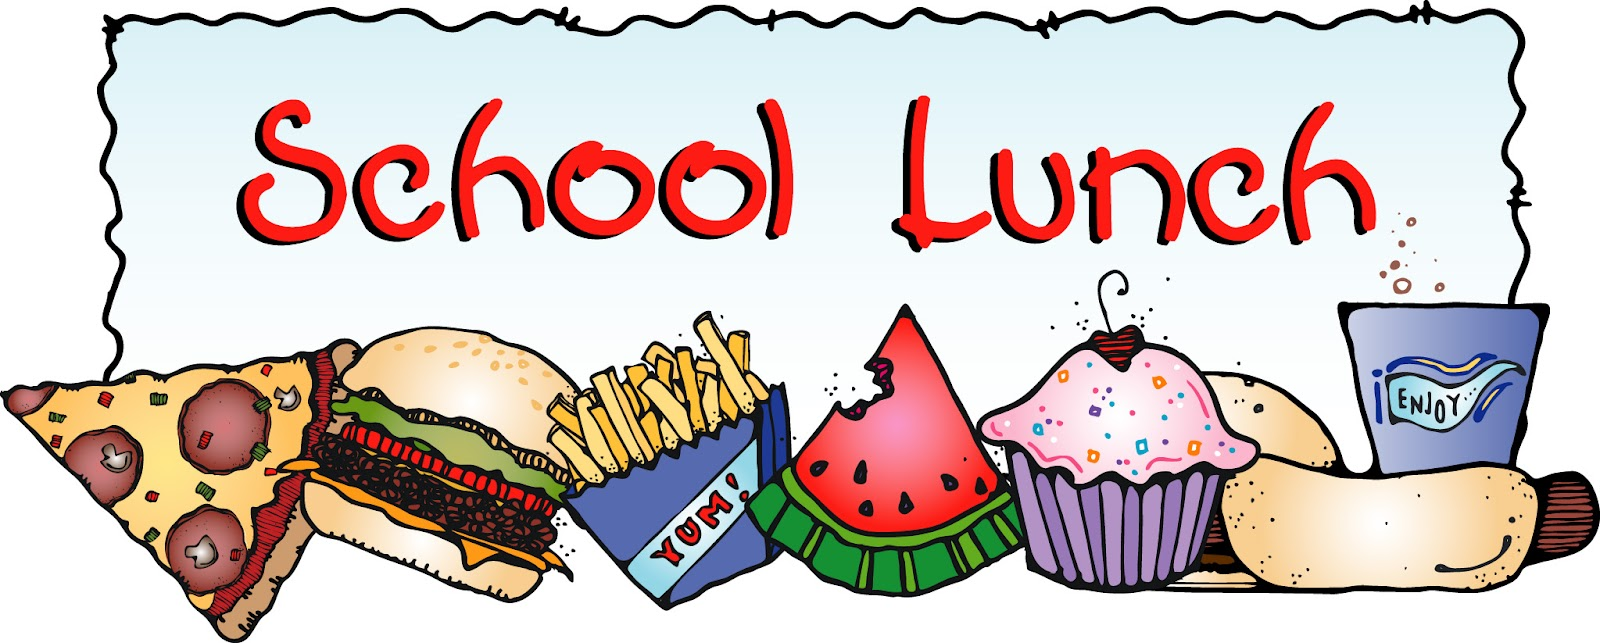 Lunch clipart 6-Lunch clipart 6-9